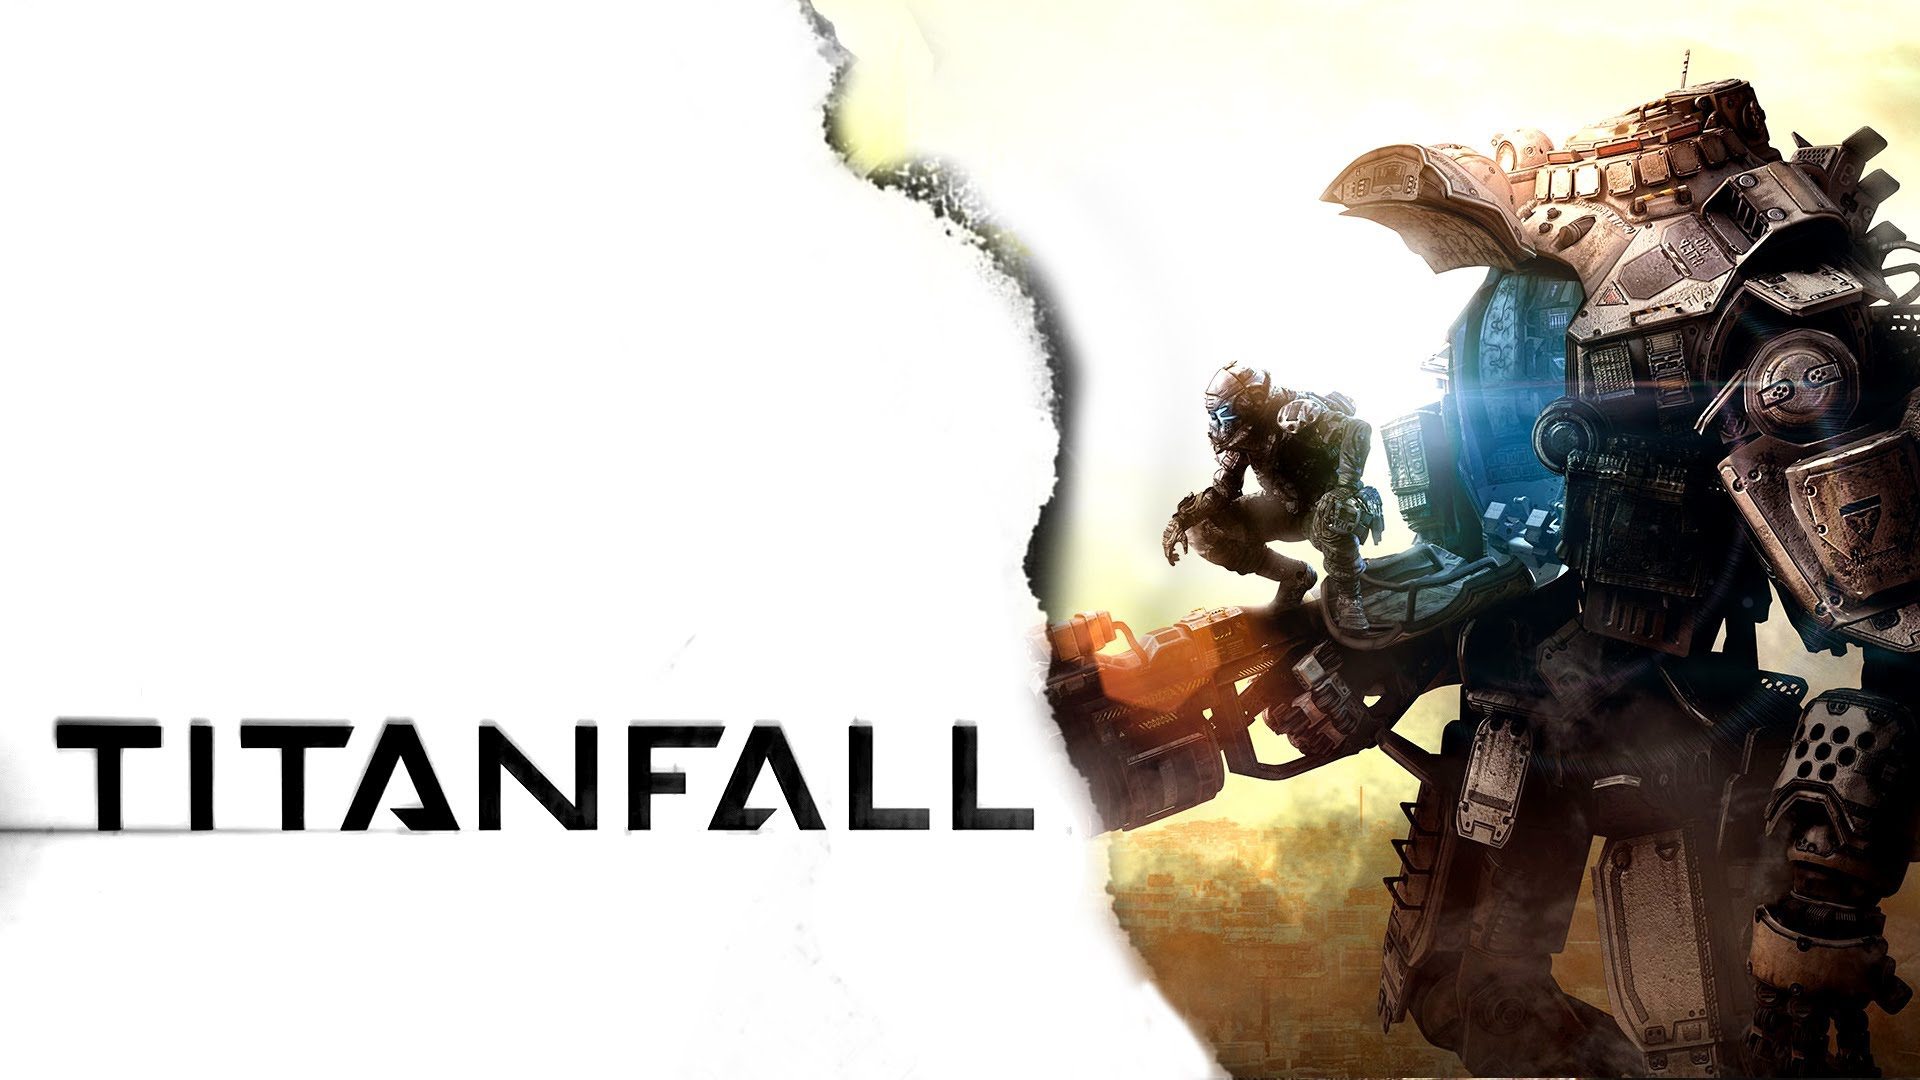 titanfall wallpaper 1080p